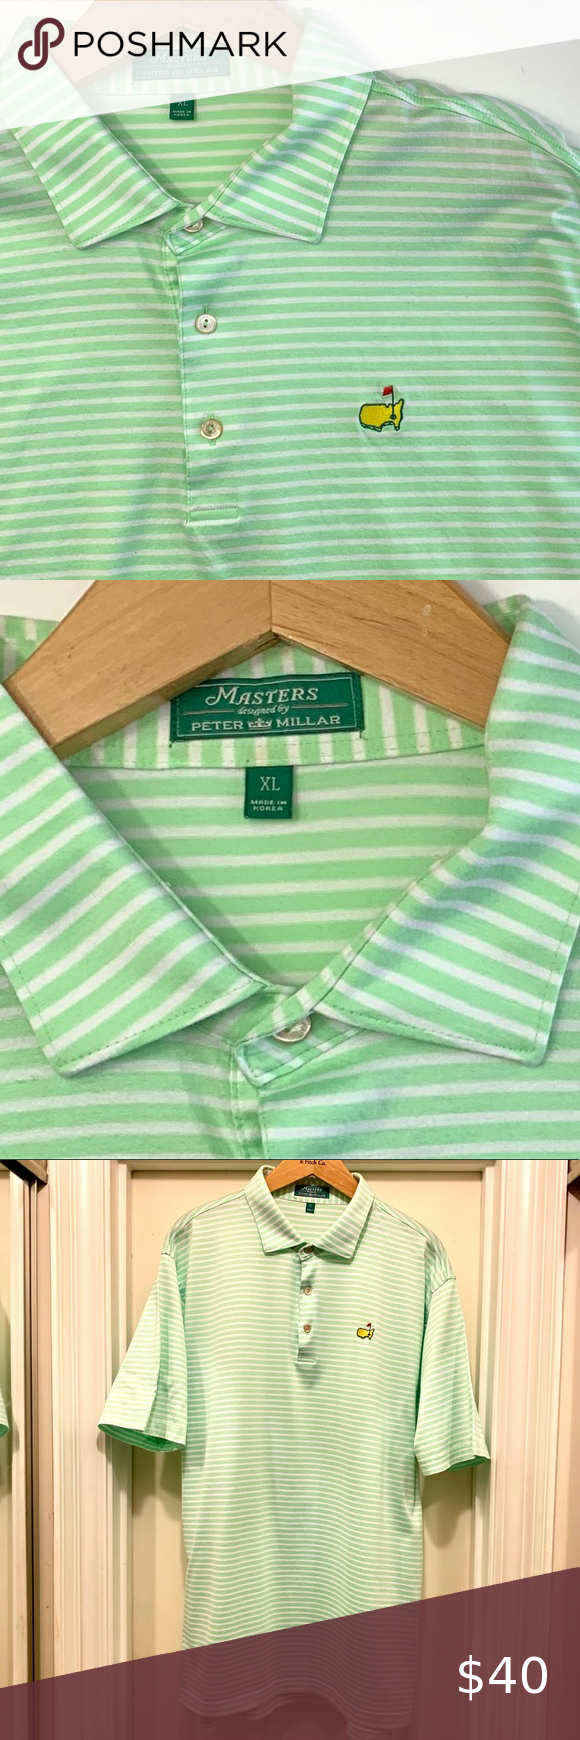 Masters Polo by Peter Millar Mens XL in 2020 Mens xl